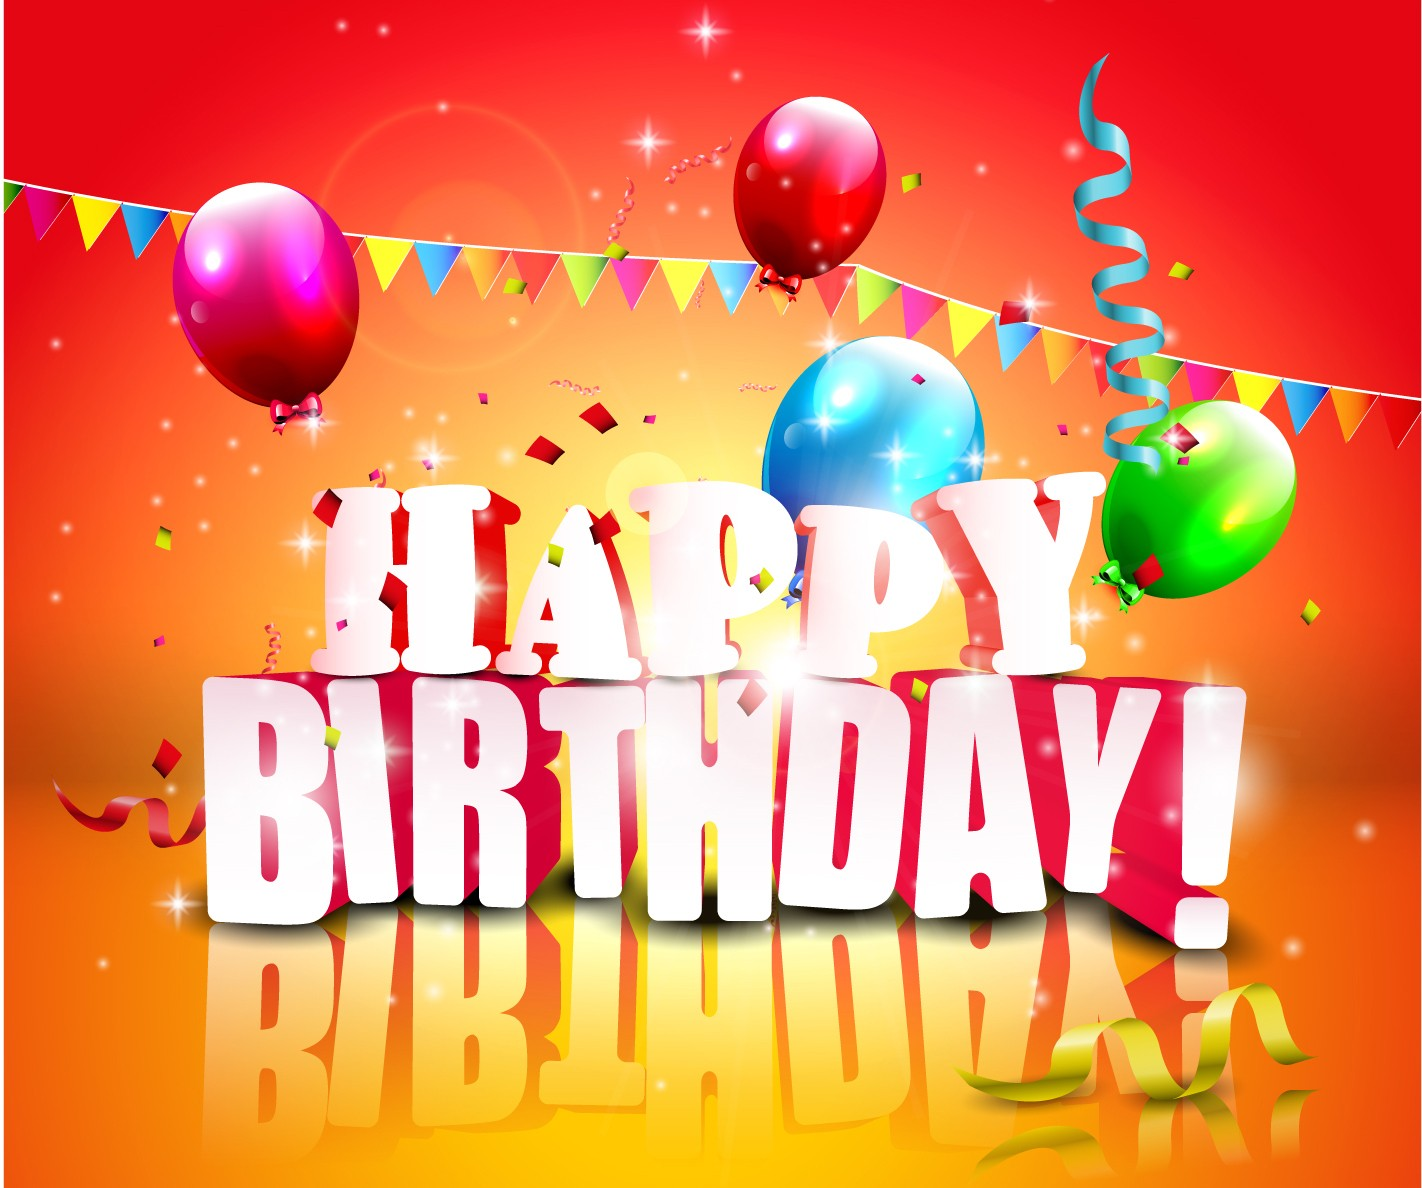 happy birthday cards and wishes ; birthday-greetings-card-square-orange-balloon-party-themes-great-lettering-image-birthday-greeting-cards-wishes-creepypasta